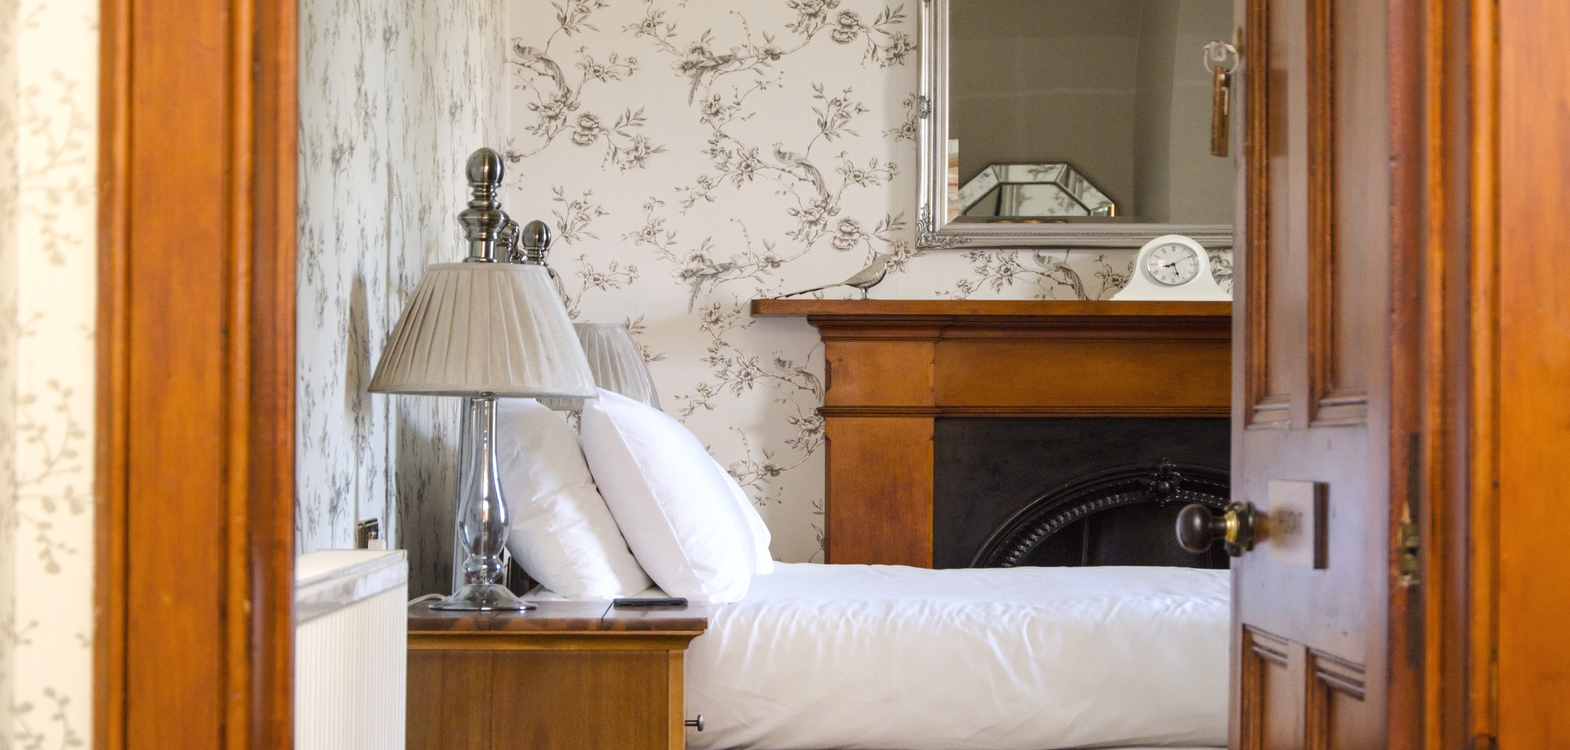 Looking into a bedroom at Strathallan Guest House showing a made up bed with white bed linen and a delicate patterned wallpaper